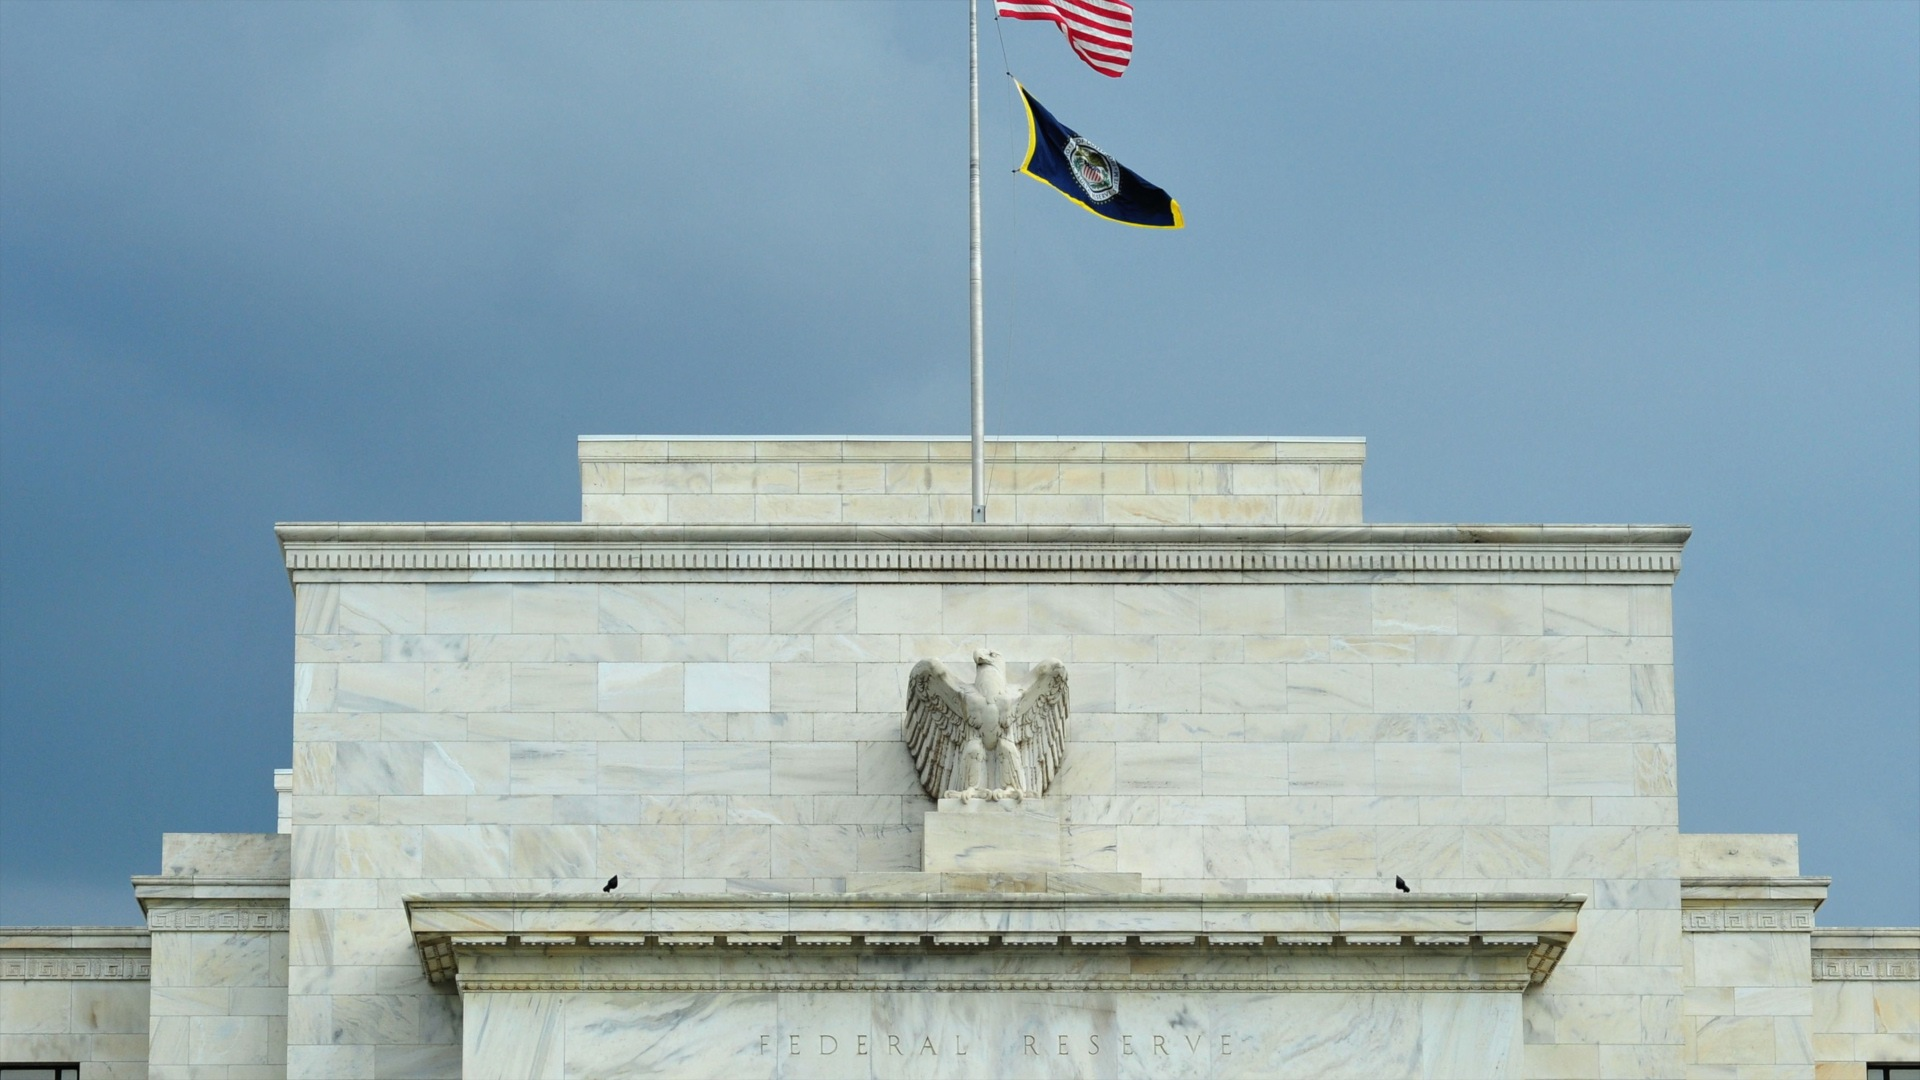 A positive jobs report has left investors wondering if the Federal Reserve will raise interest rates in March. USA TODAY's Matt Krantz takes a look.